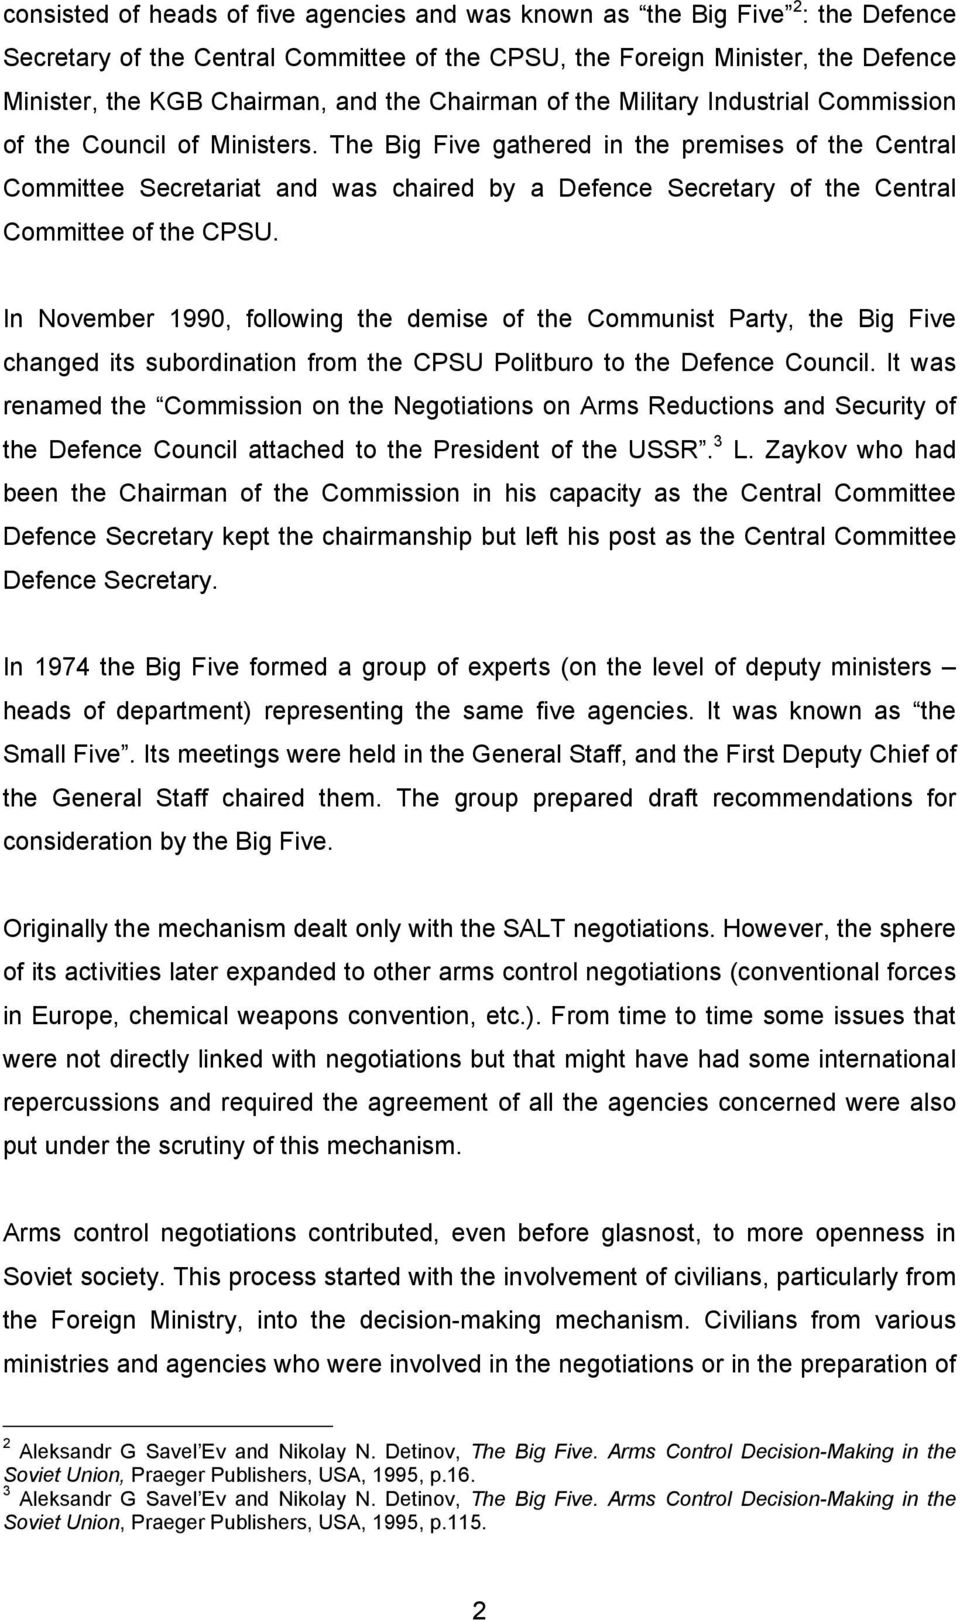 The Big Five gathered in the premises of the Central Committee Secretariat and was chaired by a Defence Secretary of the Central Committee of the CPSU.